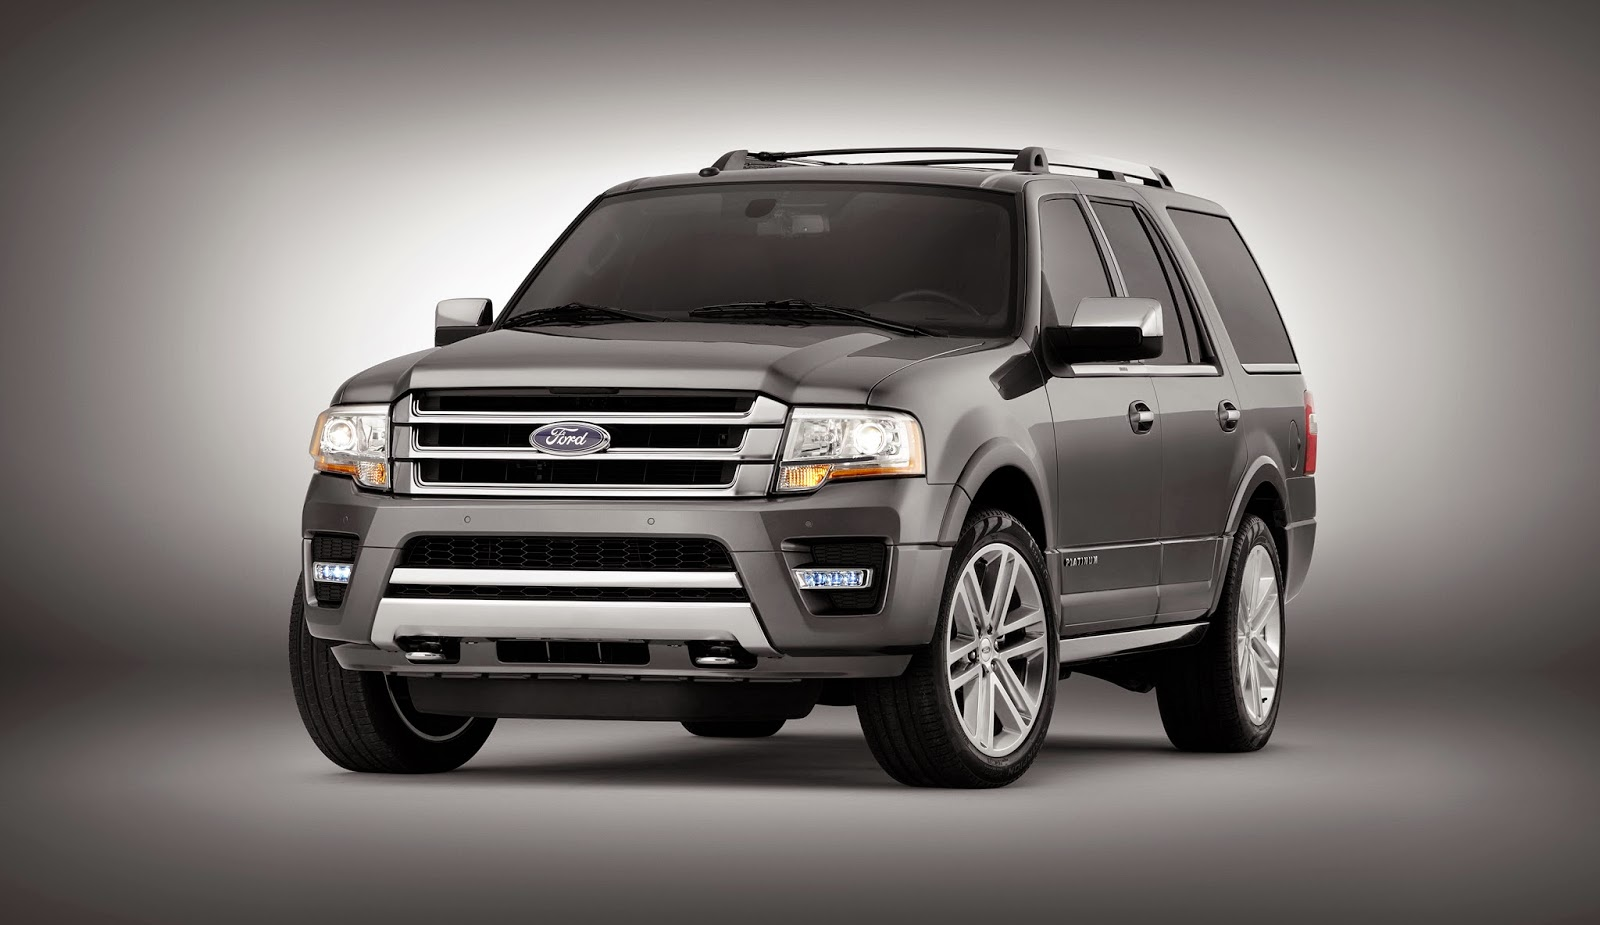 Ford reveals all new everest and new expedition platinum at mias wazzup pilipinas news and events